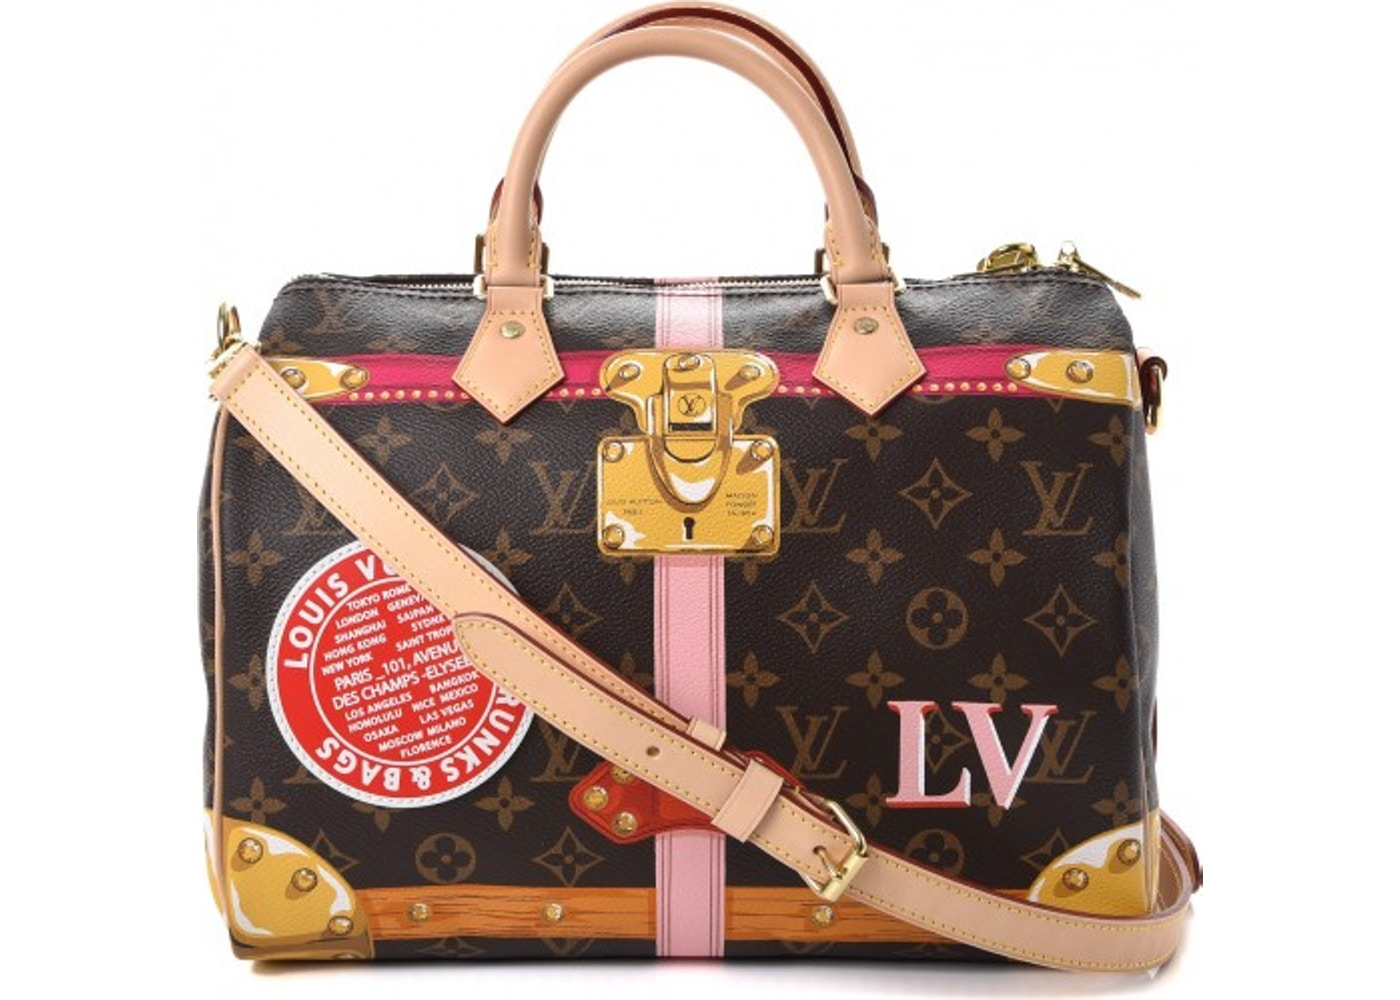 ce3ce1f4e6d5 Louis Vuitton Speedy Bandouliere Summer Trunks Monogram With Strap 30  Brown Pink Gold. Monogram With Strap 30 Brown Pink Gold